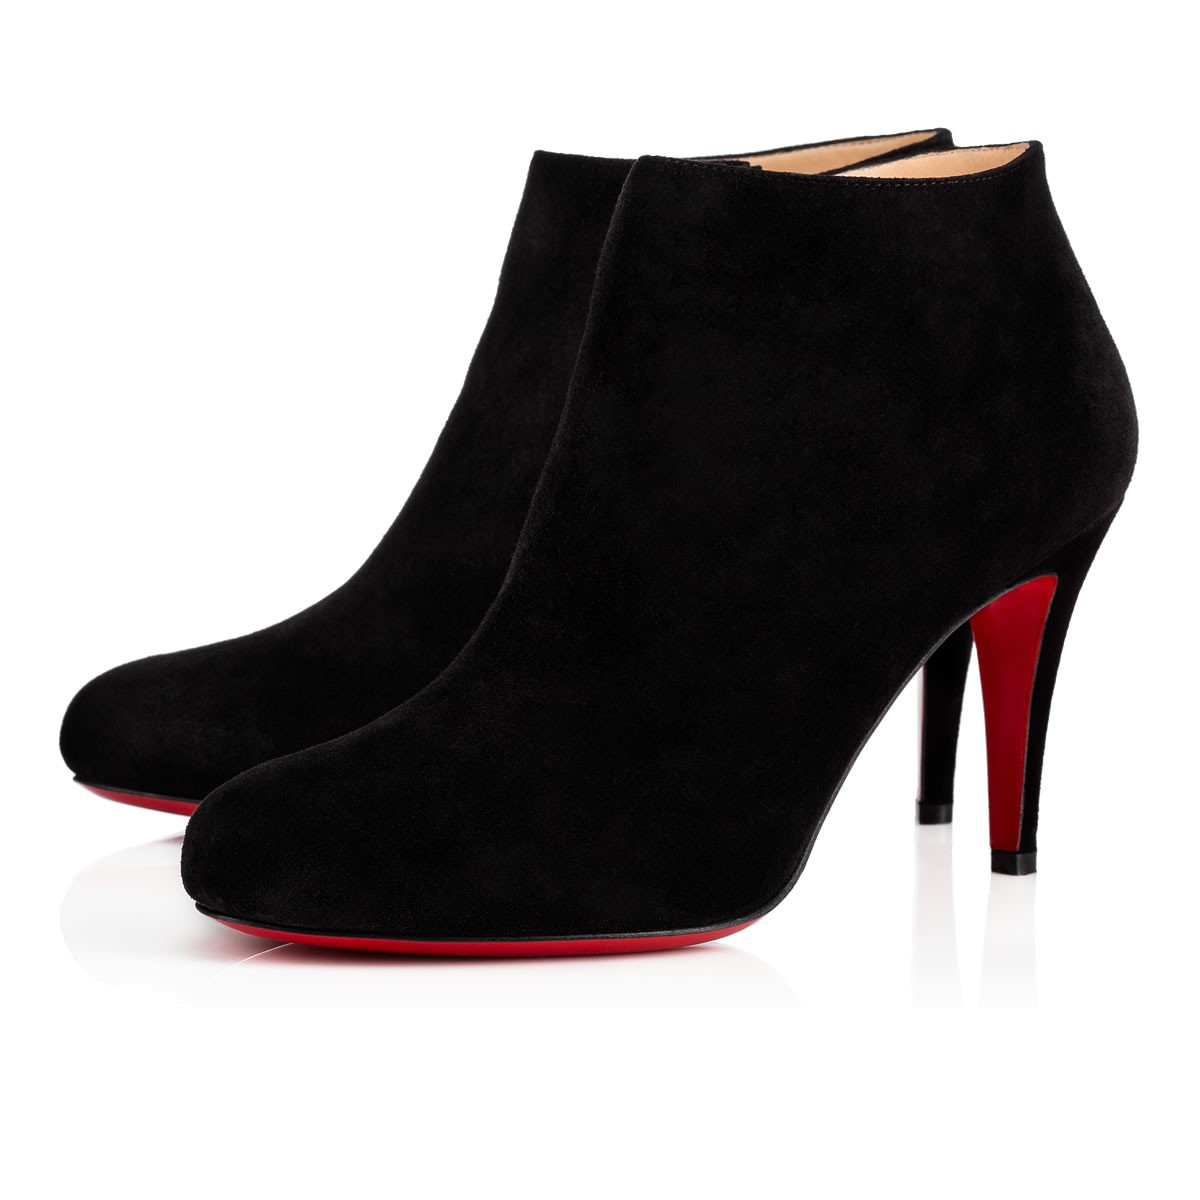 en soldes 58585 52f49 BELLE 85 Black Veau Velours - Women Shoes - Christian Louboutin